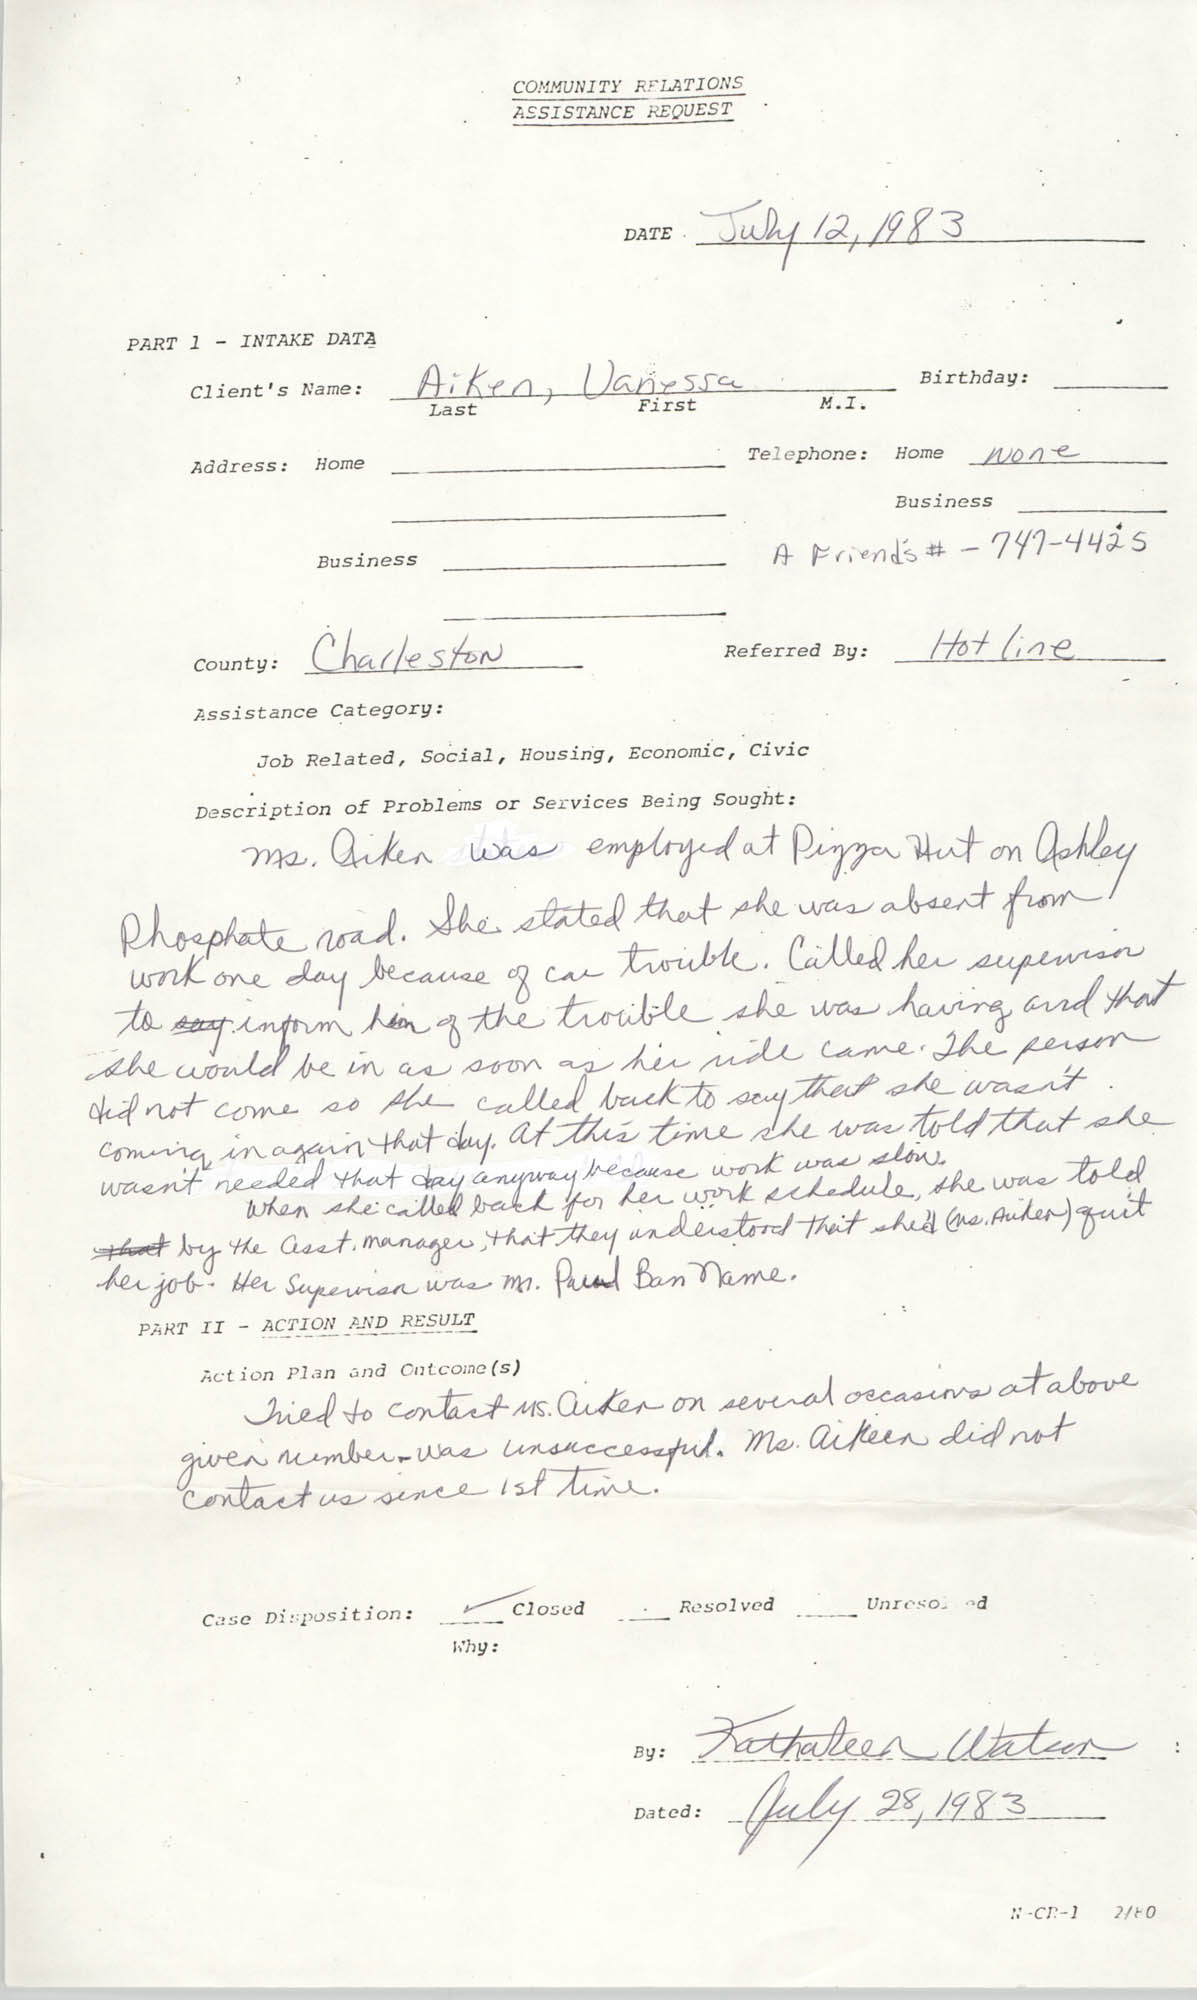 Community Relations Assistance Request, July 14, 1983